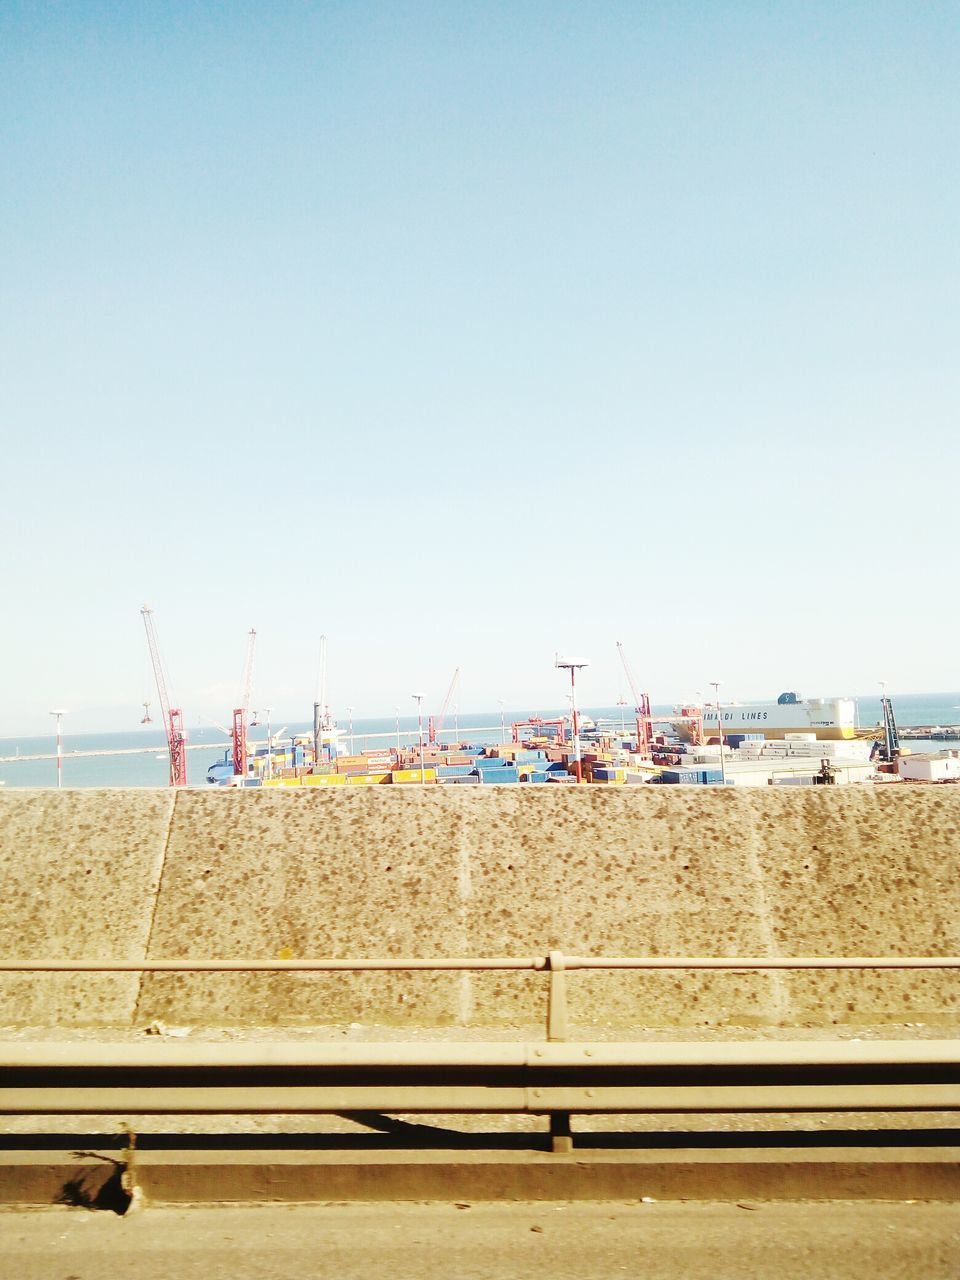 copy space, day, no people, clear sky, transportation, outdoors, industry, water, nautical vessel, technology, sky, nature